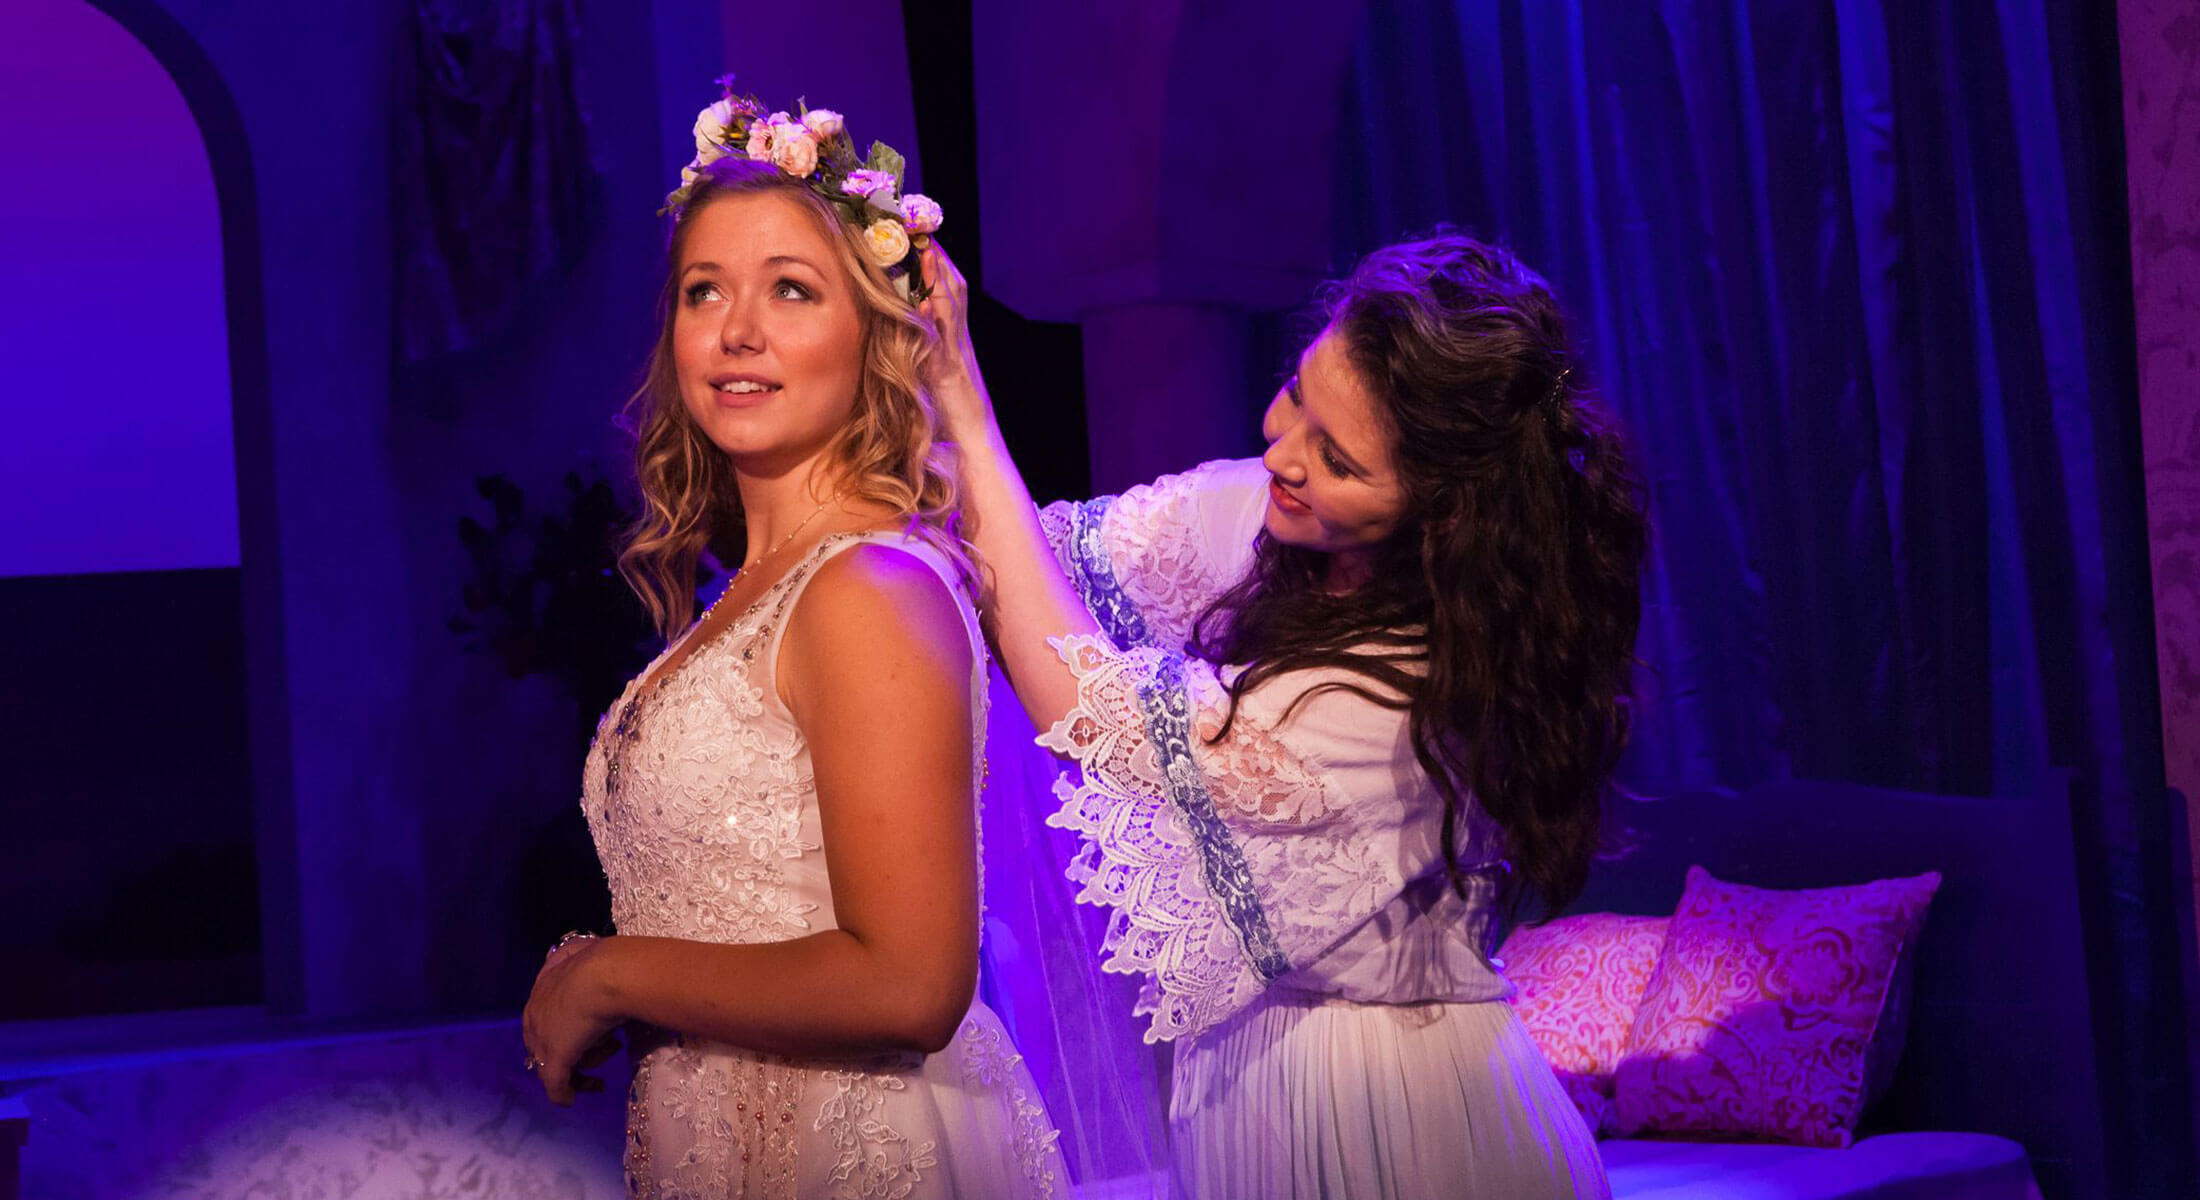 Mamma Mia Play at the Black Hills Playhouse